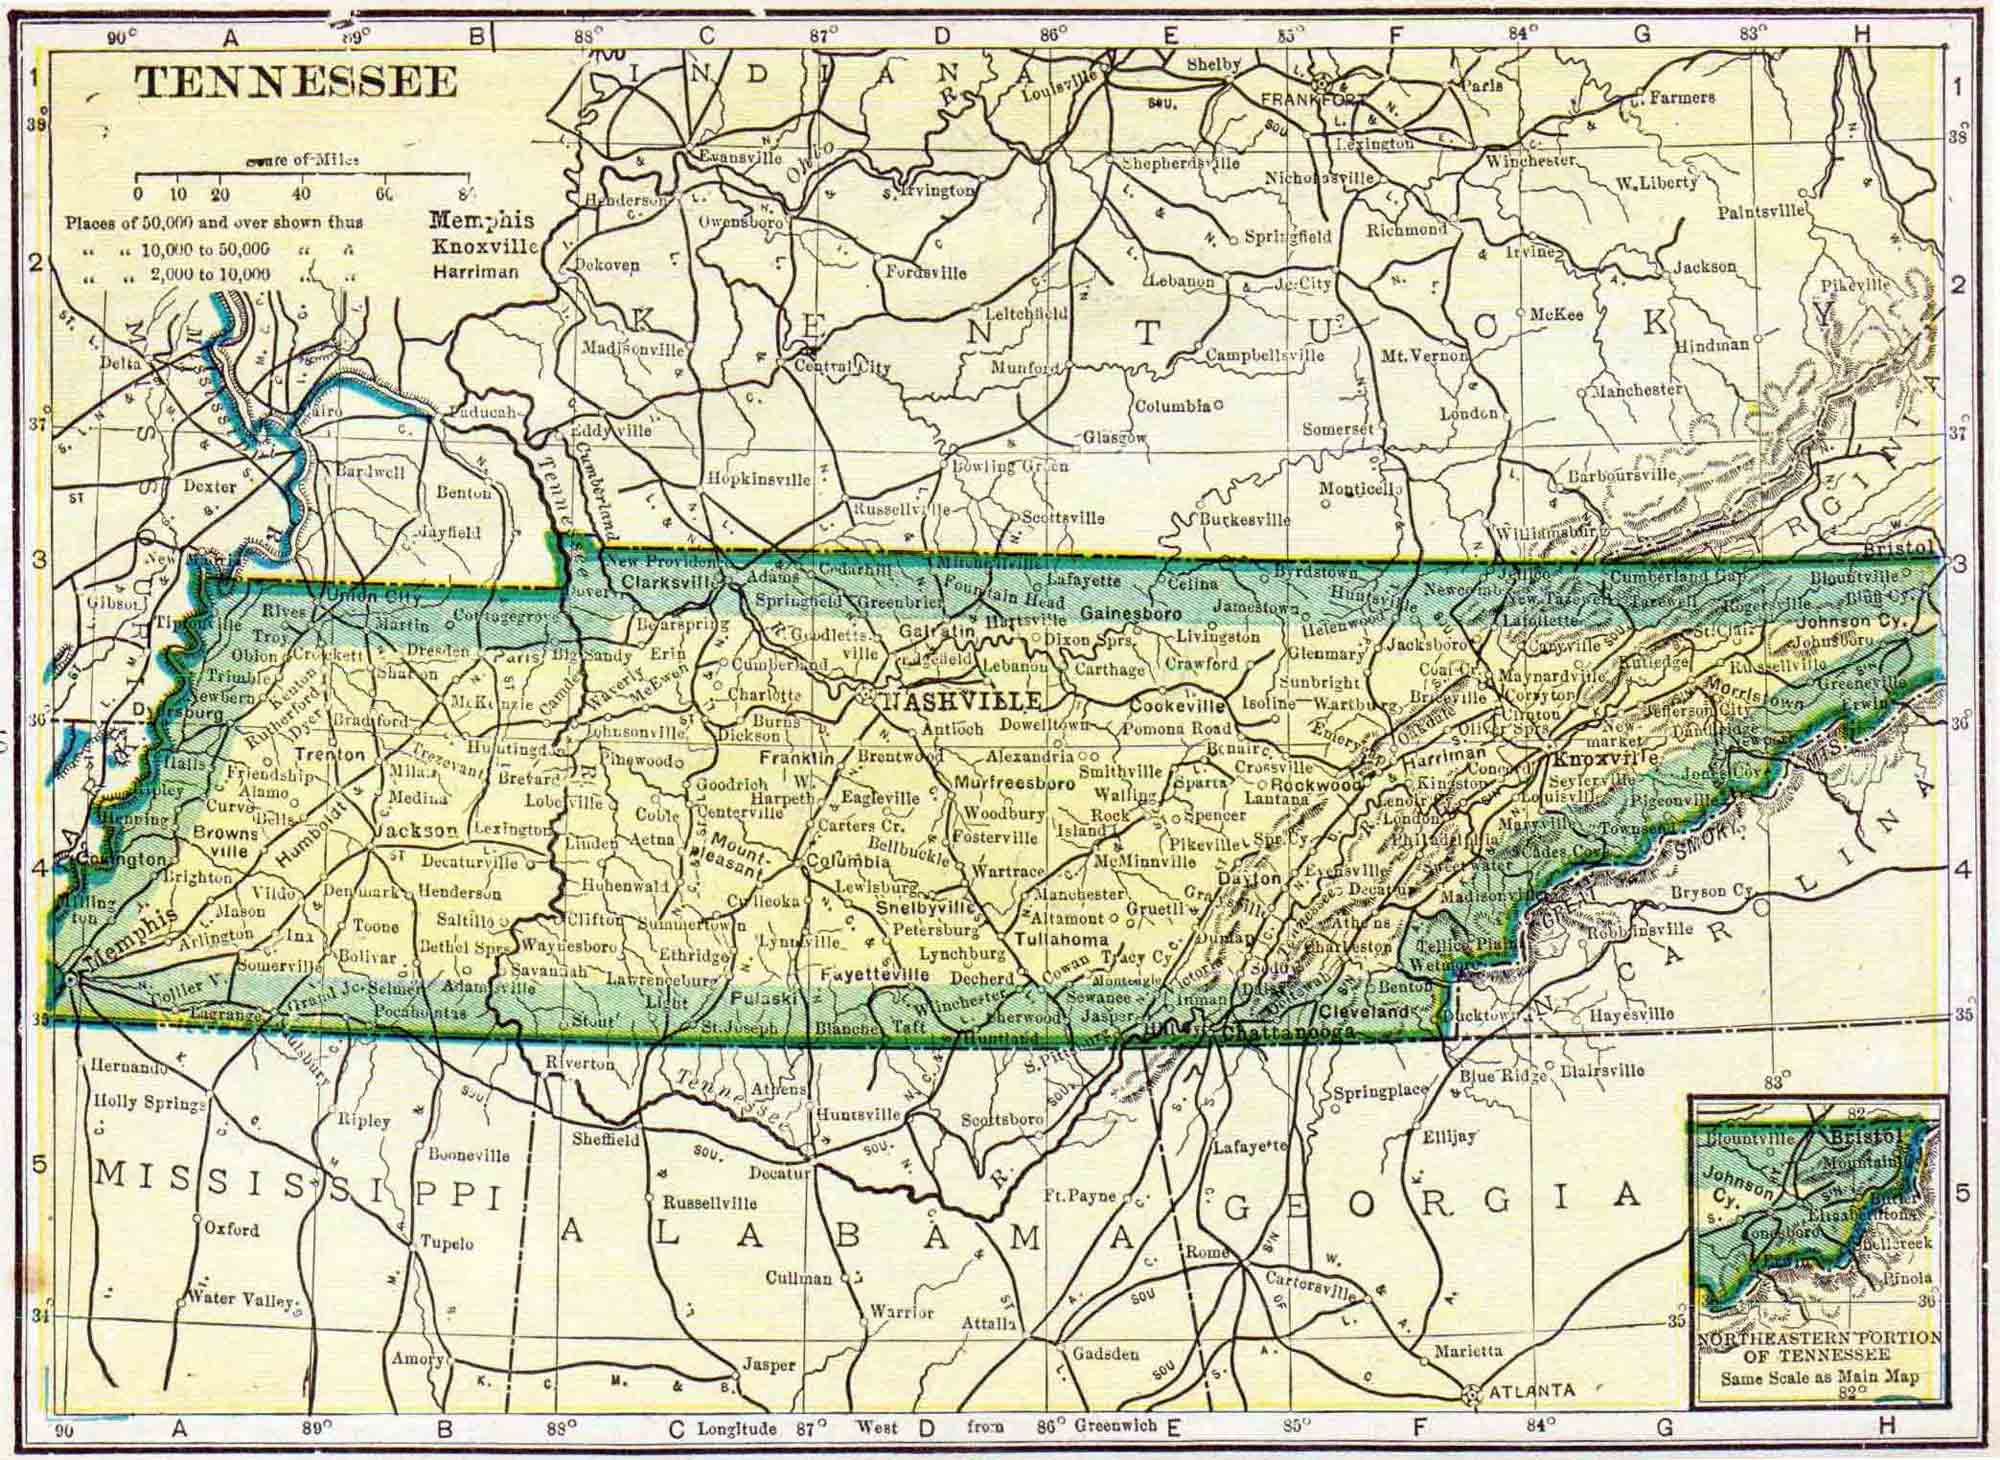 Tennessee Genealogy - Free Tennessee Genealogy | Access Genealogy